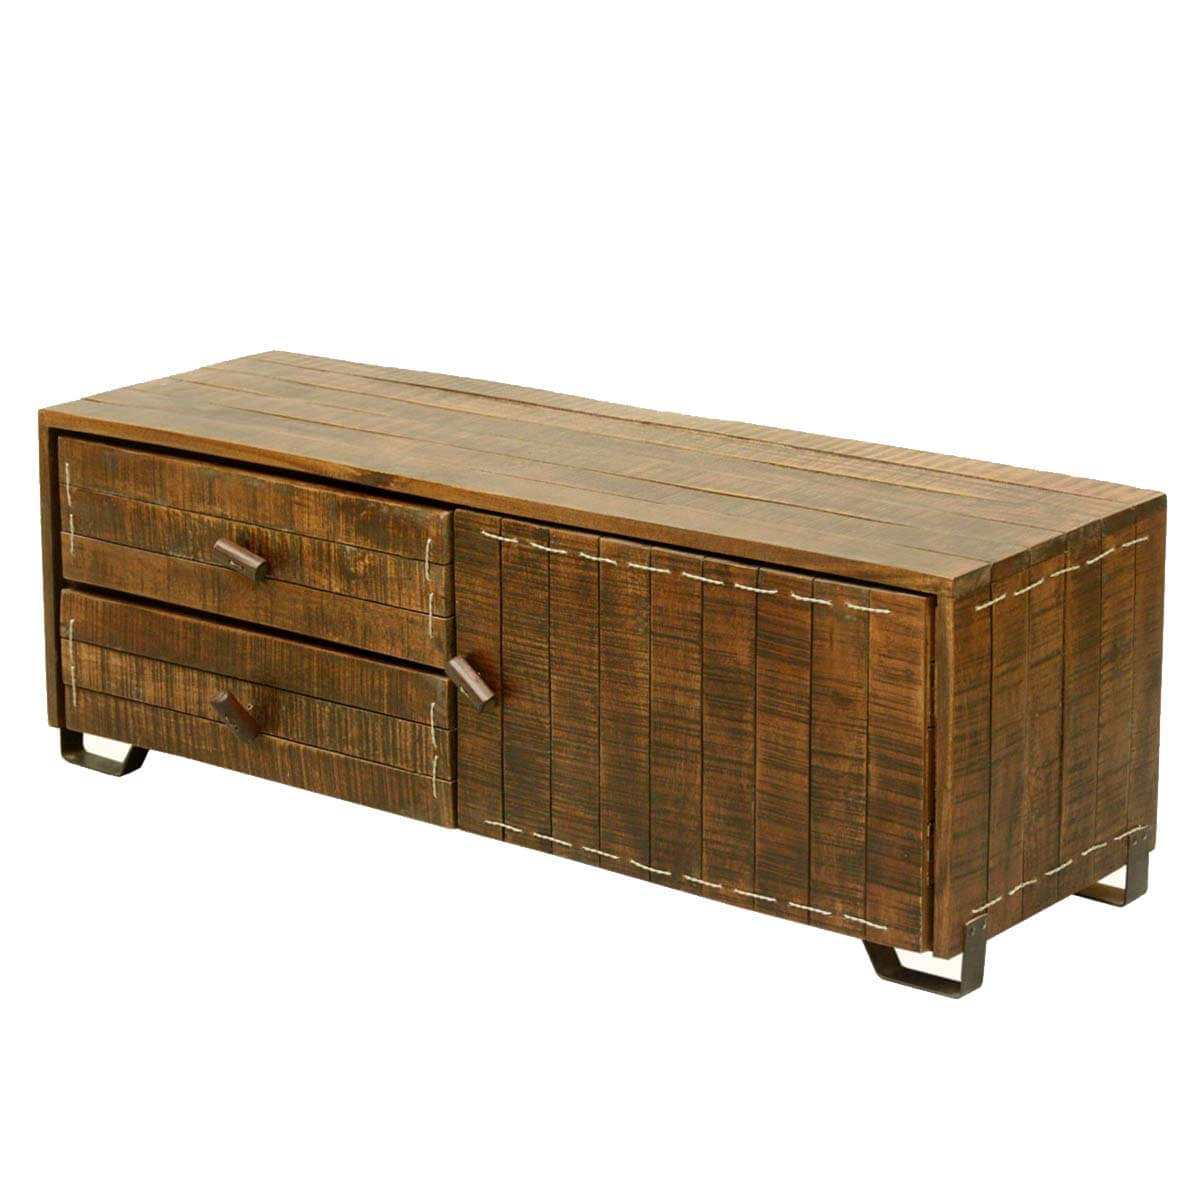 Modern Scholar Reclaimed Wood Industrial Media Console Cabinet